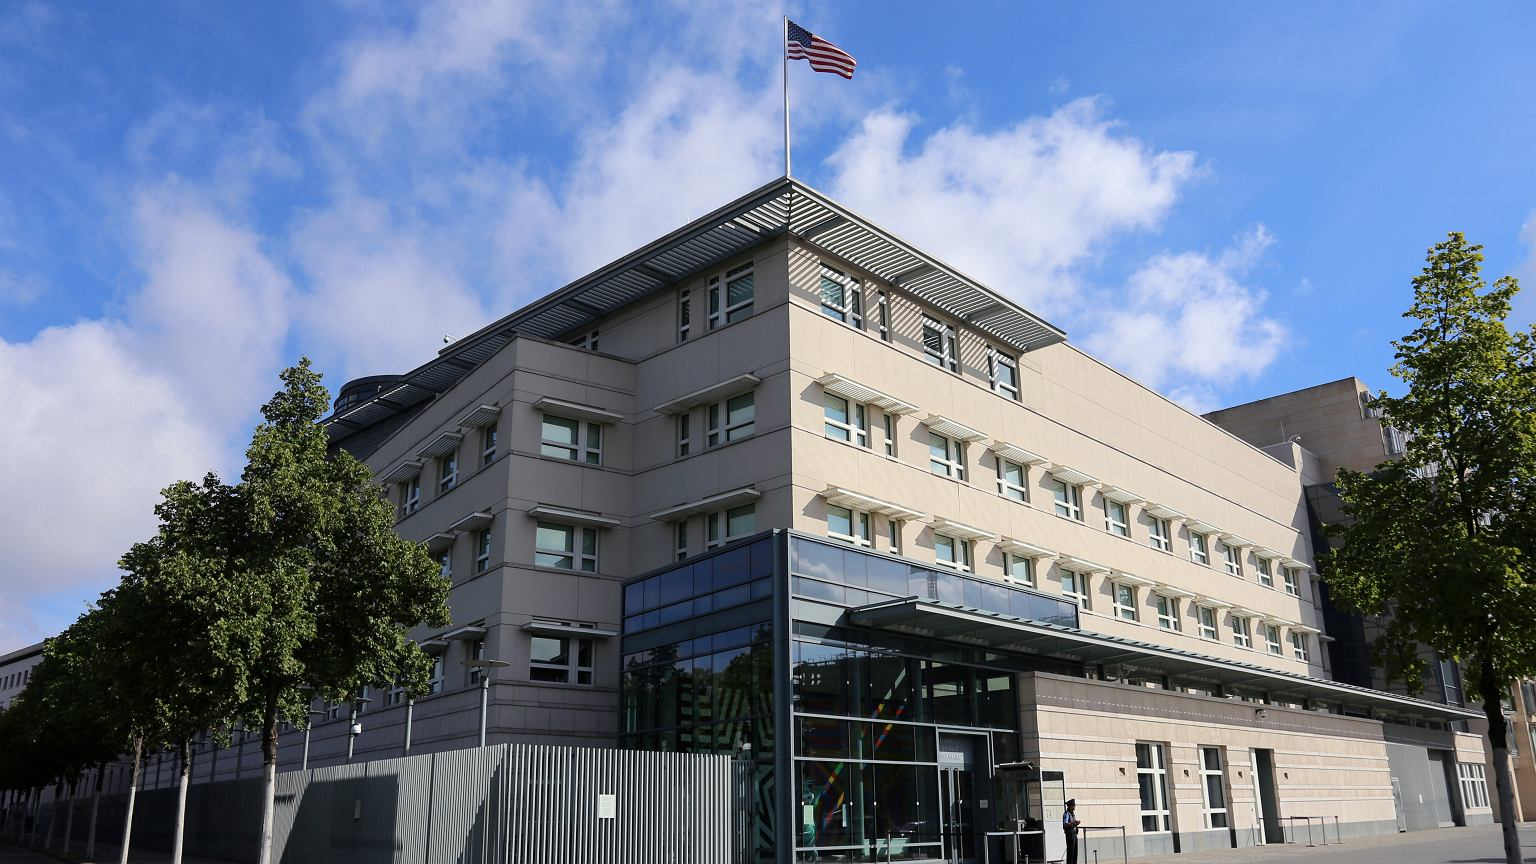 About the US Embassy in Vienna